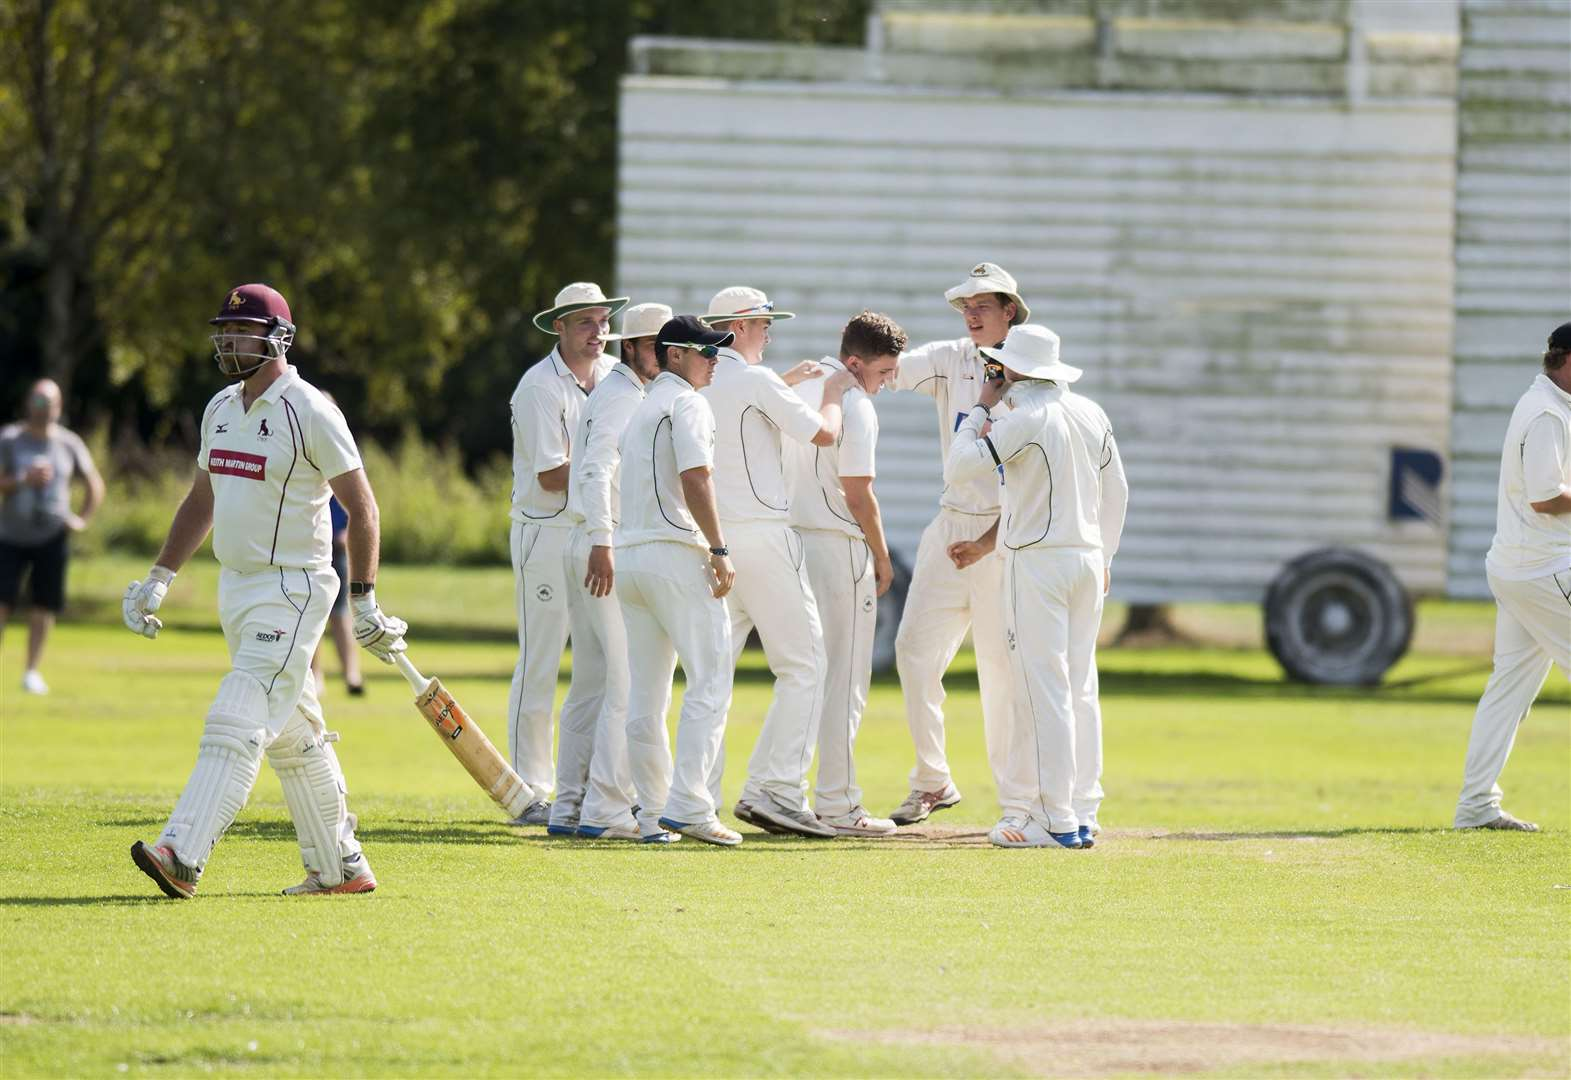 Batting badly lets Sudbury down in loss at Mildenhall